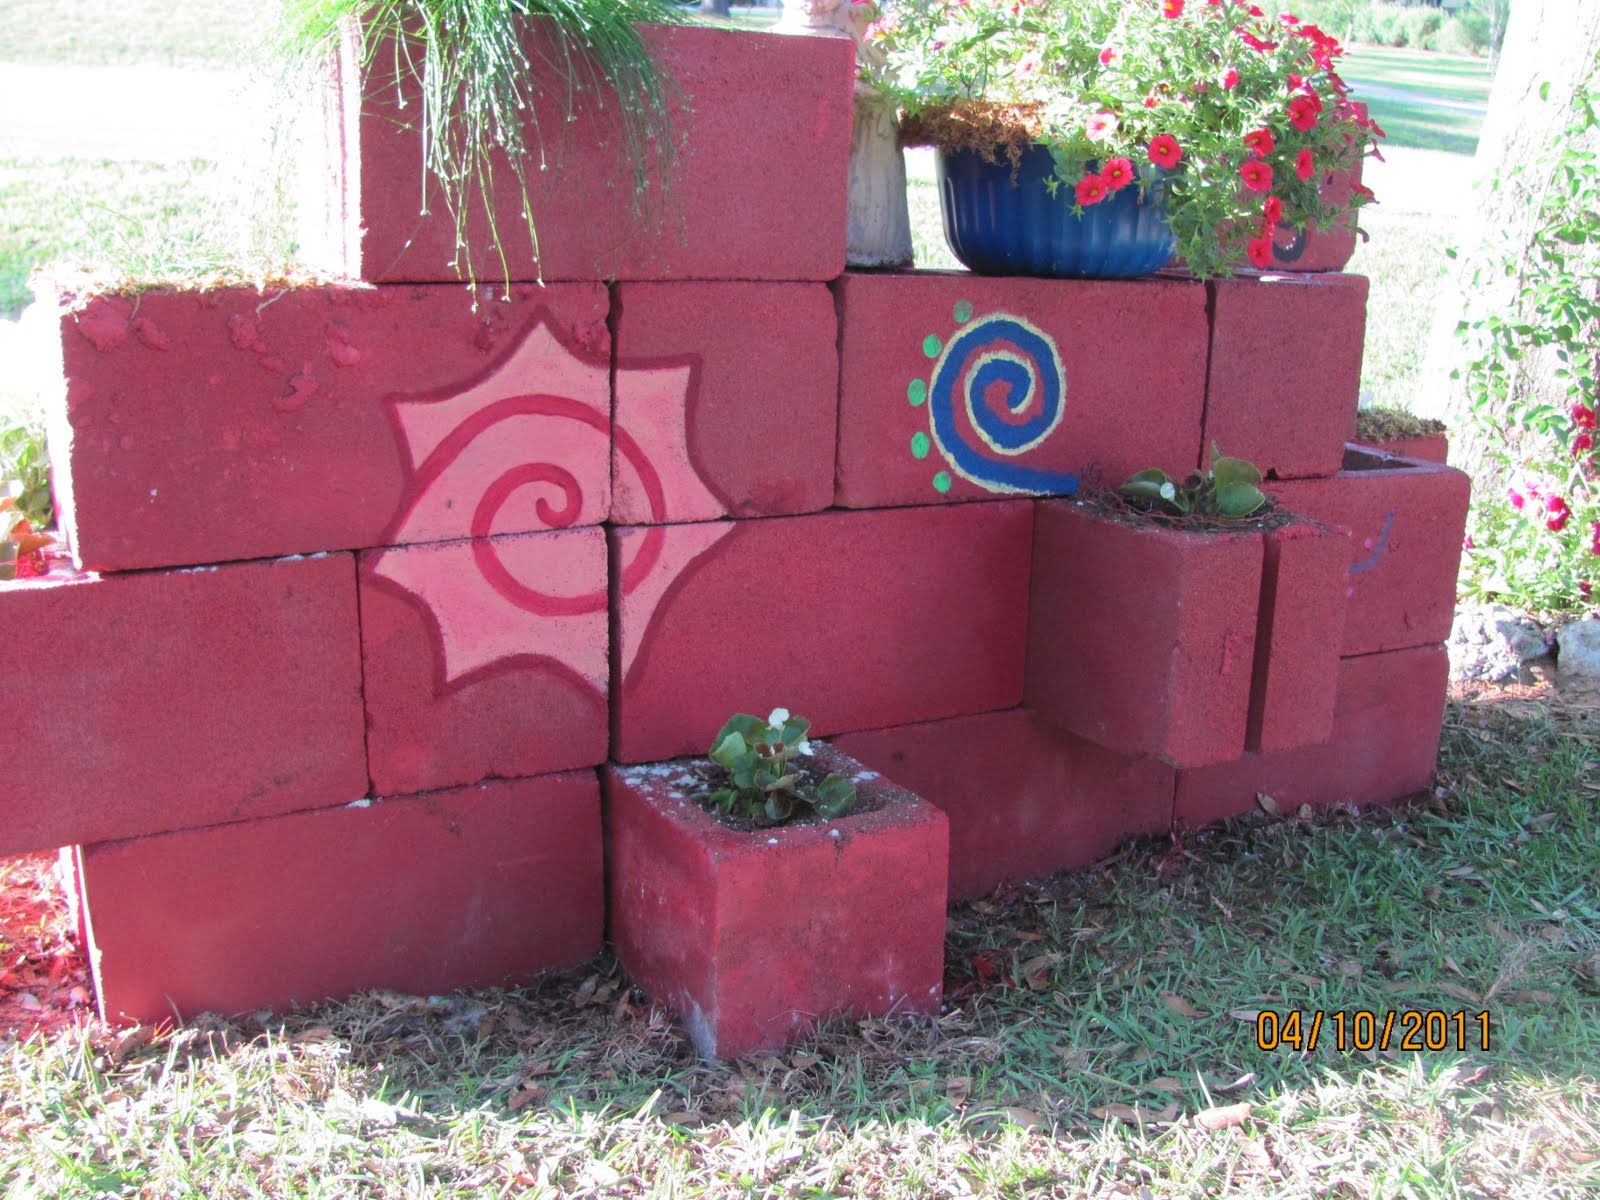 More family and flowers cinder block saturday gardening with teenagers for Painting cinder blocks for garden